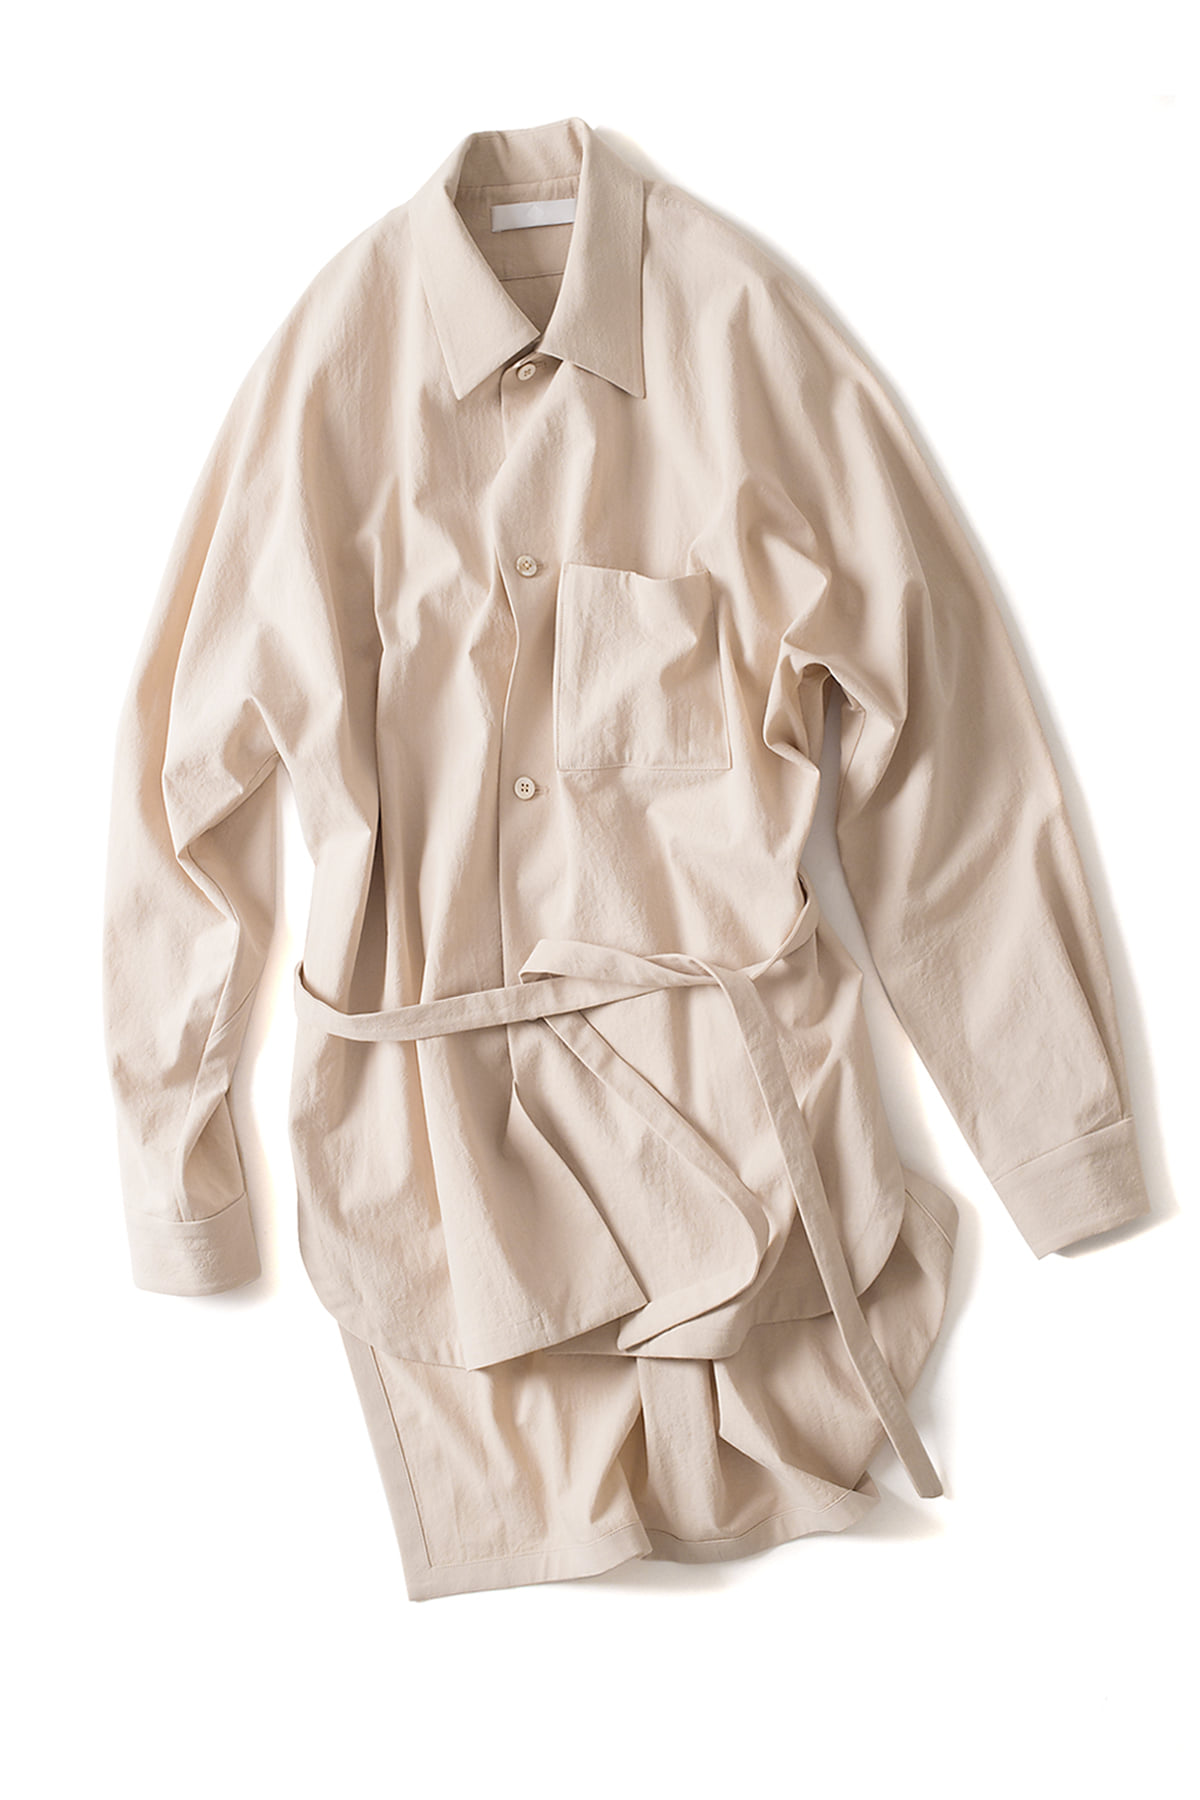 ETHOSENS : Strong Twine Cotton Shirt Coat (Sand)